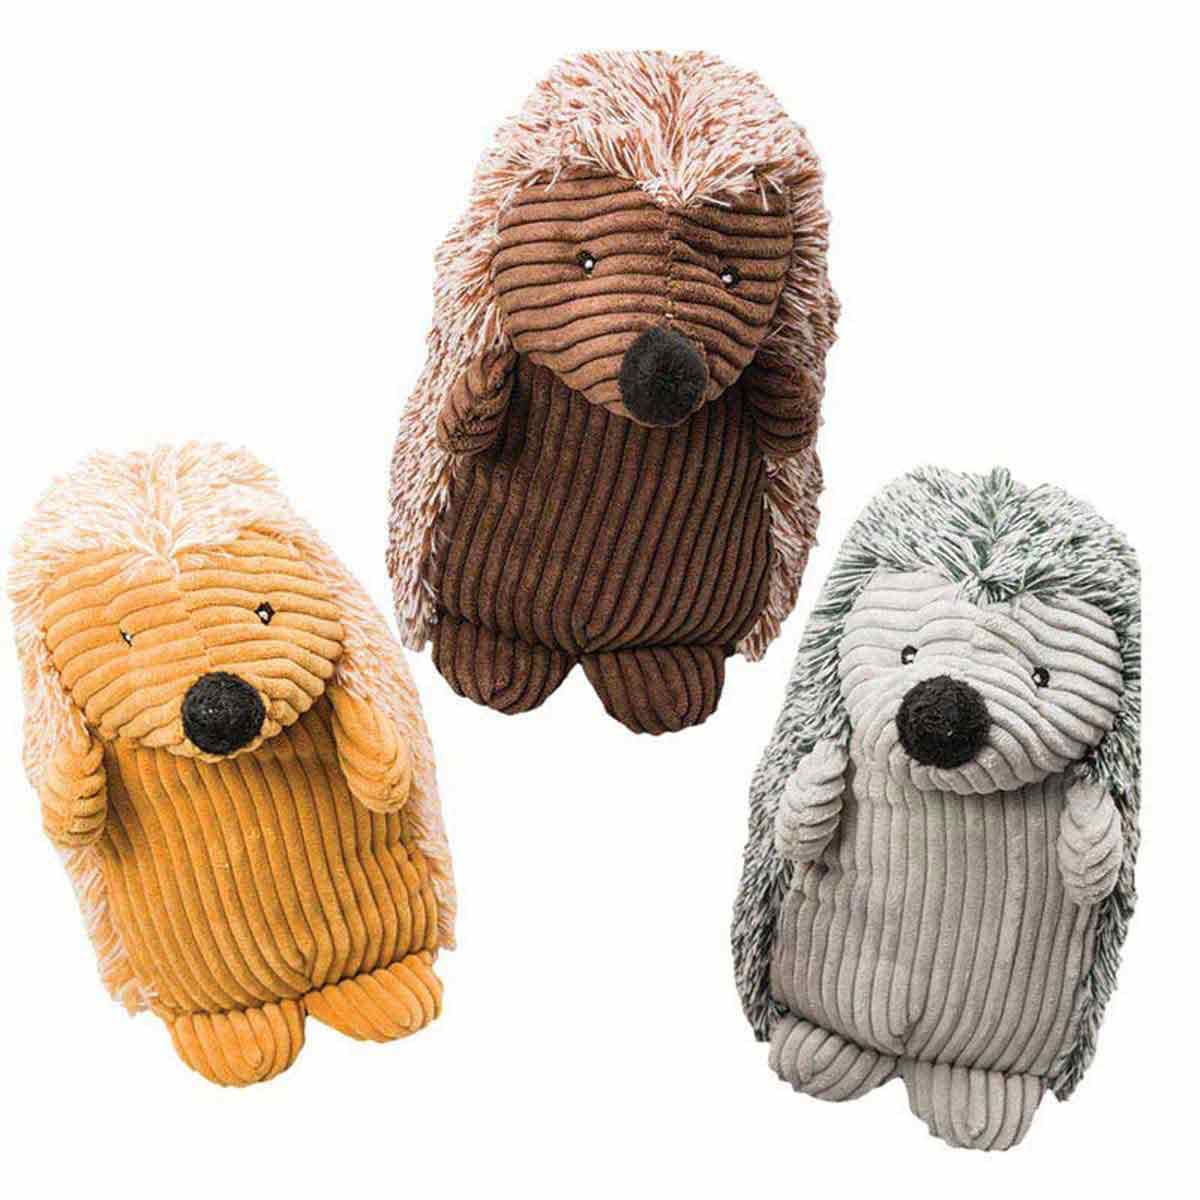 8 inch Spot Stuffed Corduroy Hedgehog Dog Toy - Brown, Gold or Gray